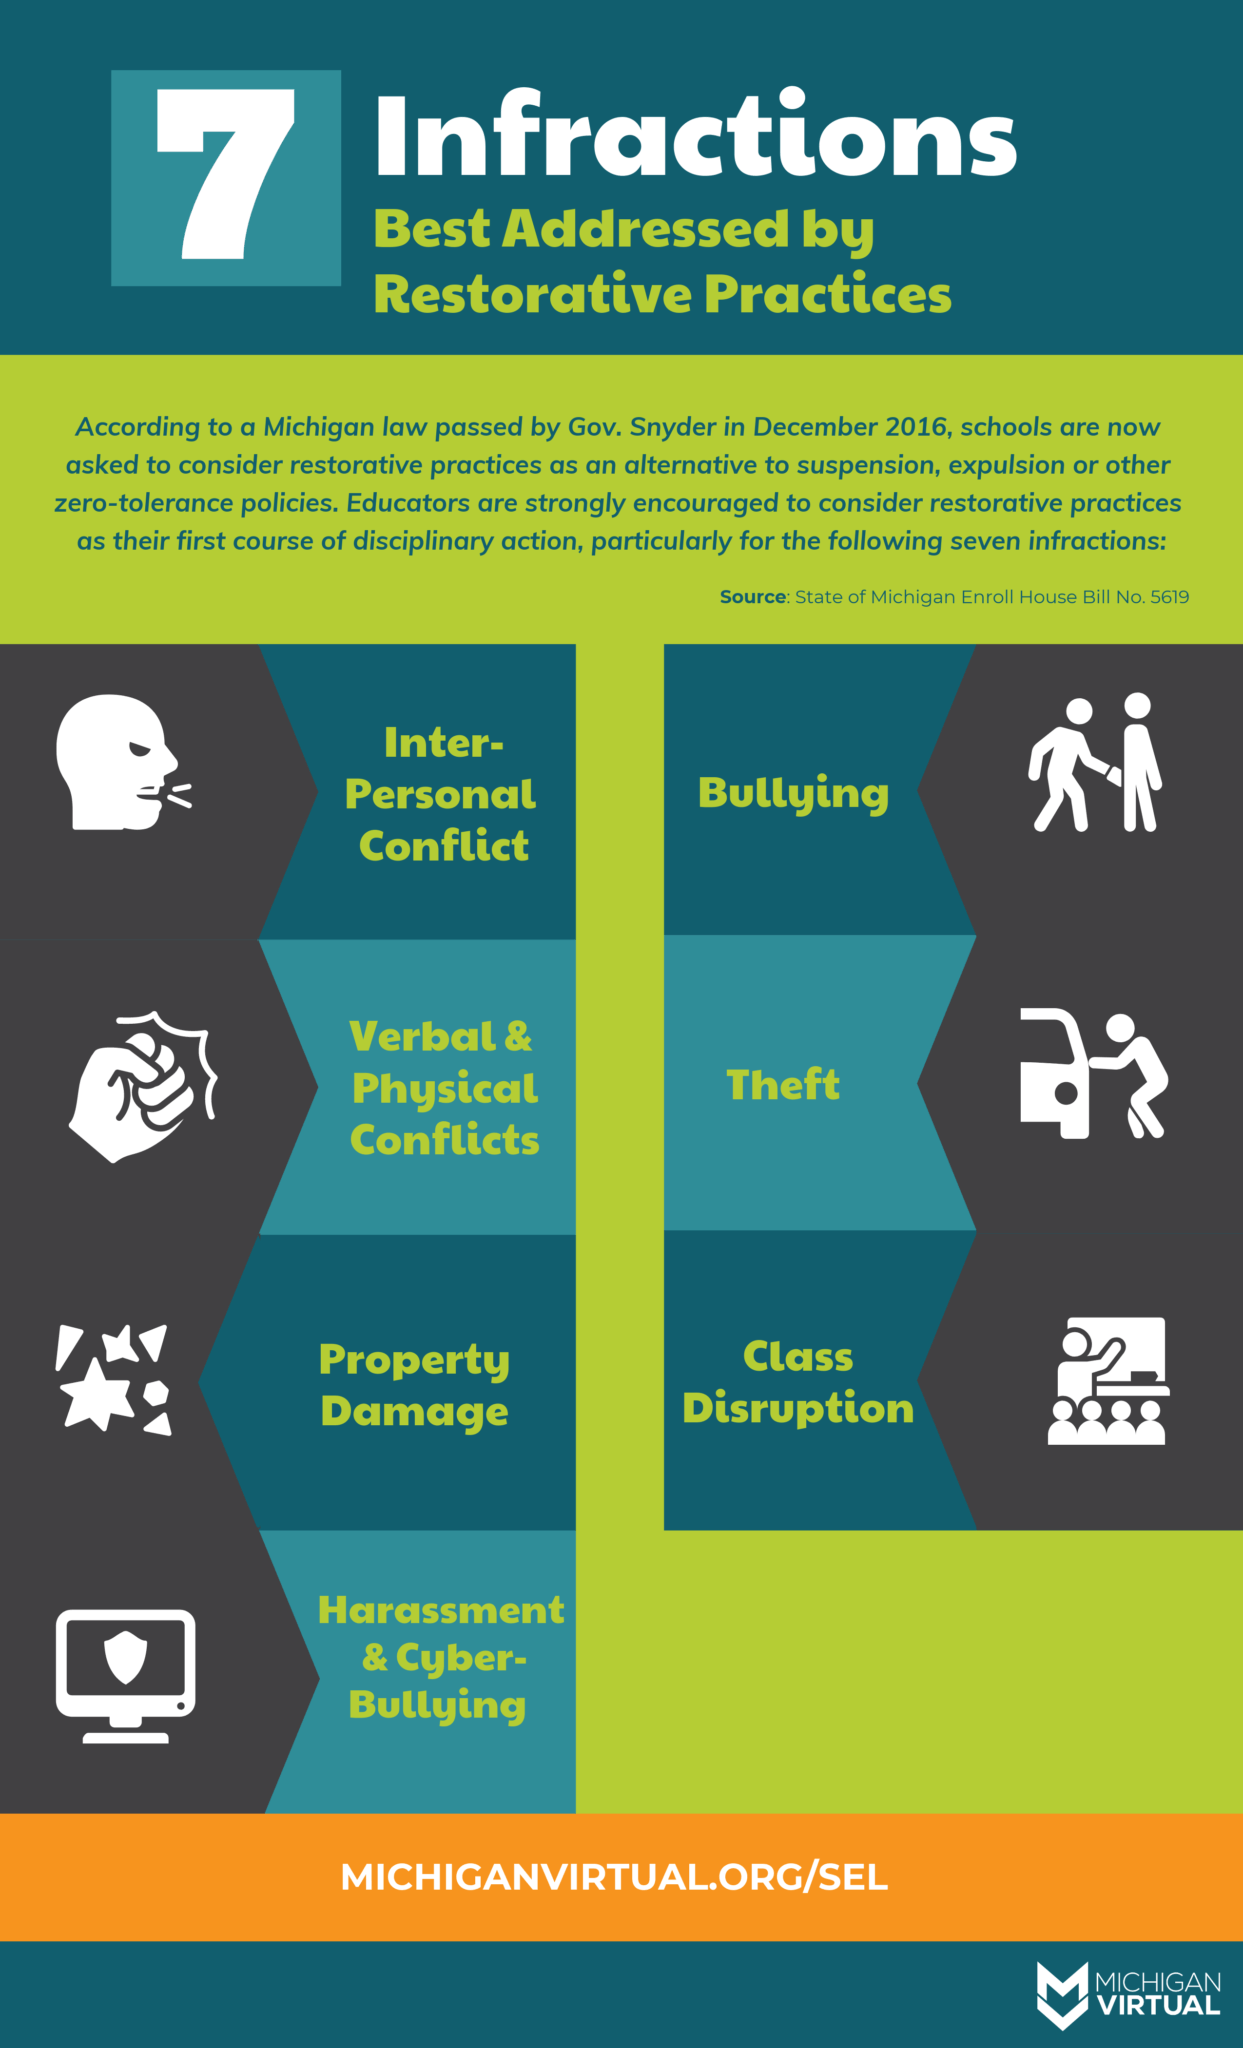 7 infractions best addressed by restorative practices: 1) interpersonal conflict 2) bullying 3) verbal and physical conflicts, 4) theft, 5) property damage, 6) class disruption, 7) harassment and cyberbullying